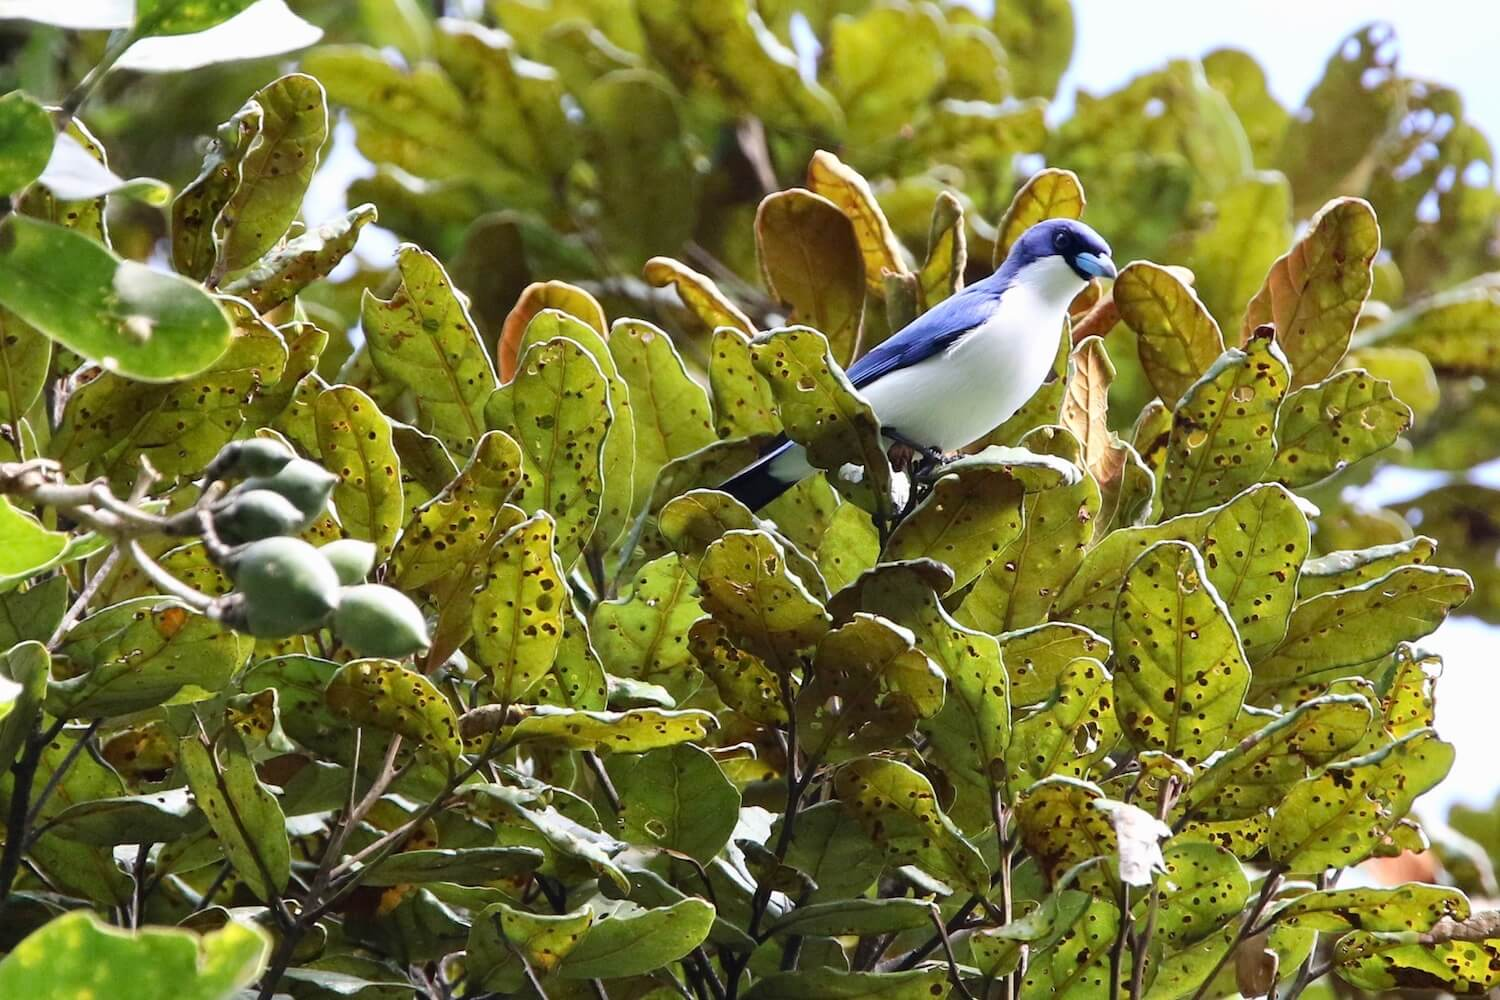 Close-up of blue-and-white bird sitting on bright-green tree.